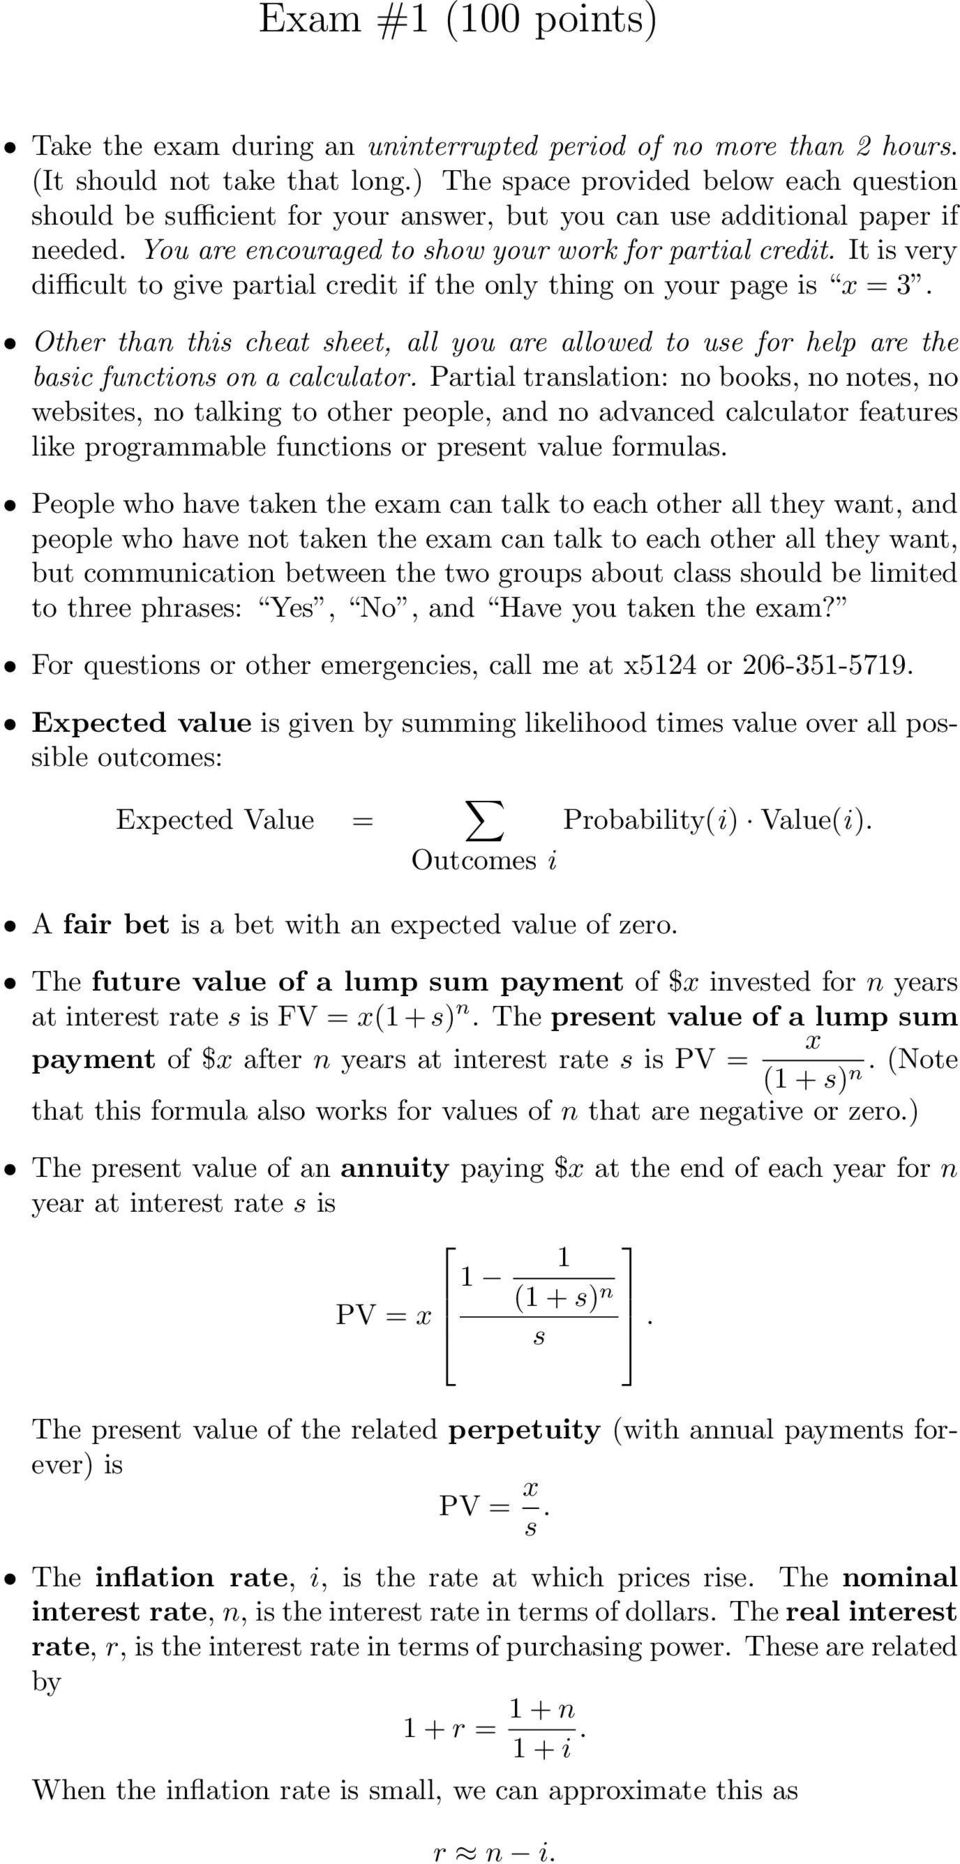 It is very difficult to give partial credit if the only thing on your page is x = 3. Other than this cheat sheet, all you are allowed to use for help are the basic functions on a calculator.